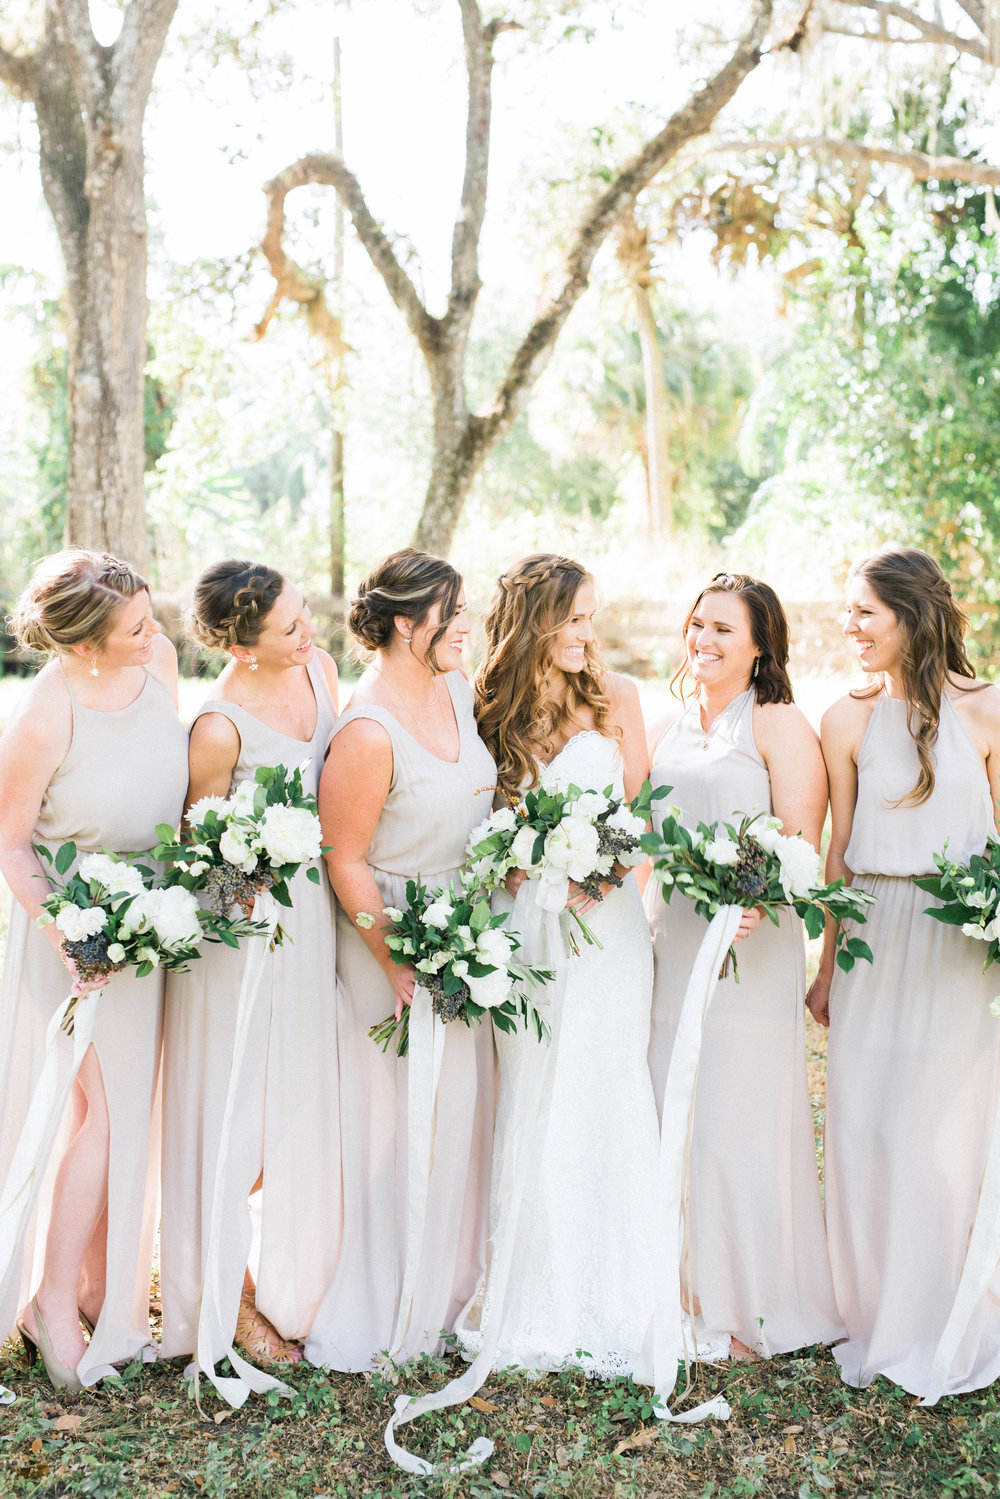 Neutral bridesmaids dresses, organic bouquets with white peonies, Bride and bridesmaids, outdoor wedding, Hunter Ryan Photography, Elleson Events